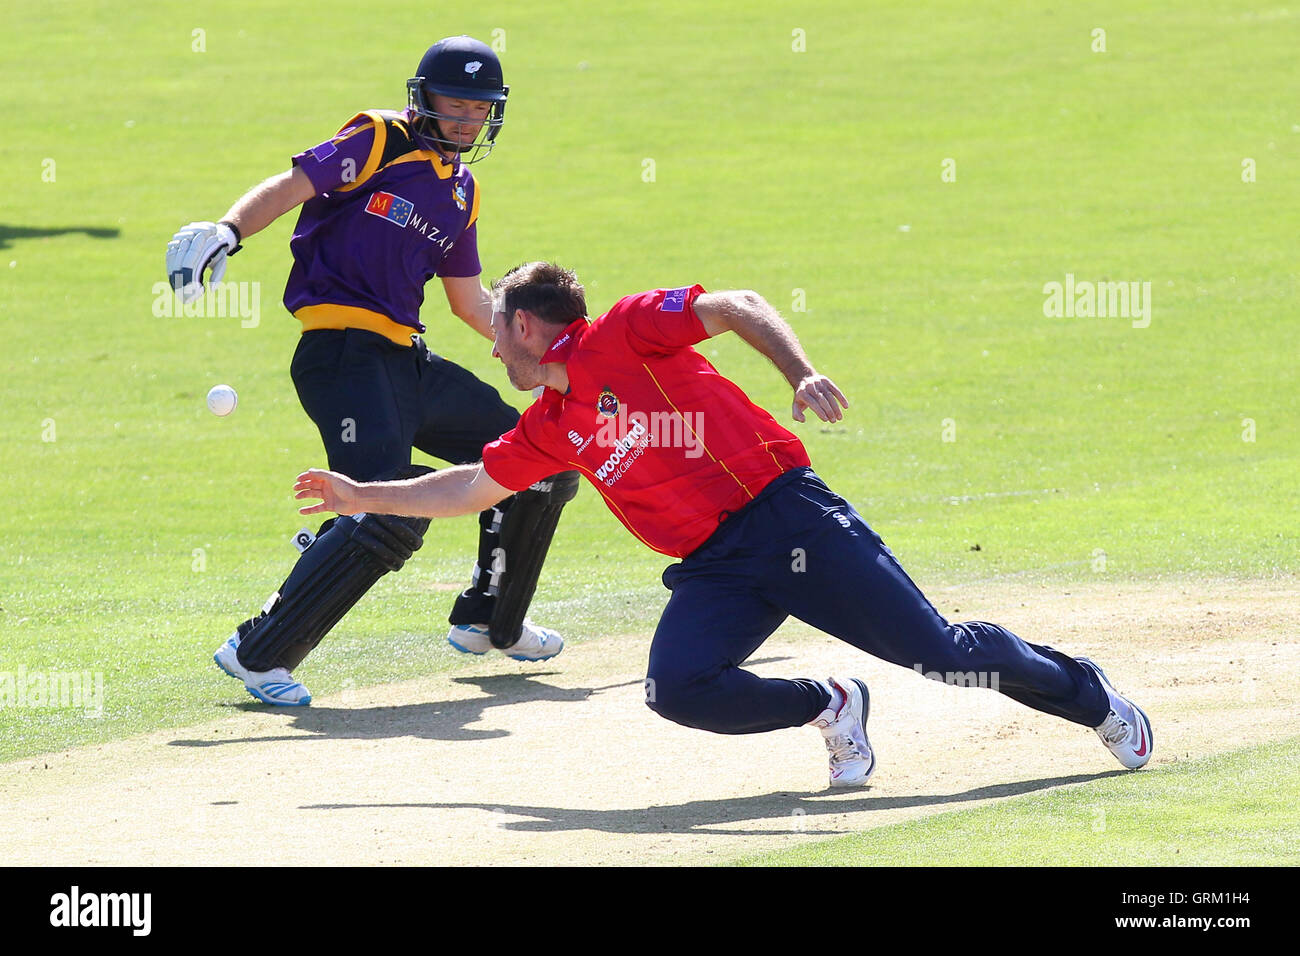 David Masters dives to the field the ball as Adam Lyth takes evasive action - Yorkshire Vikings vs Essex Eagles - Stock Image